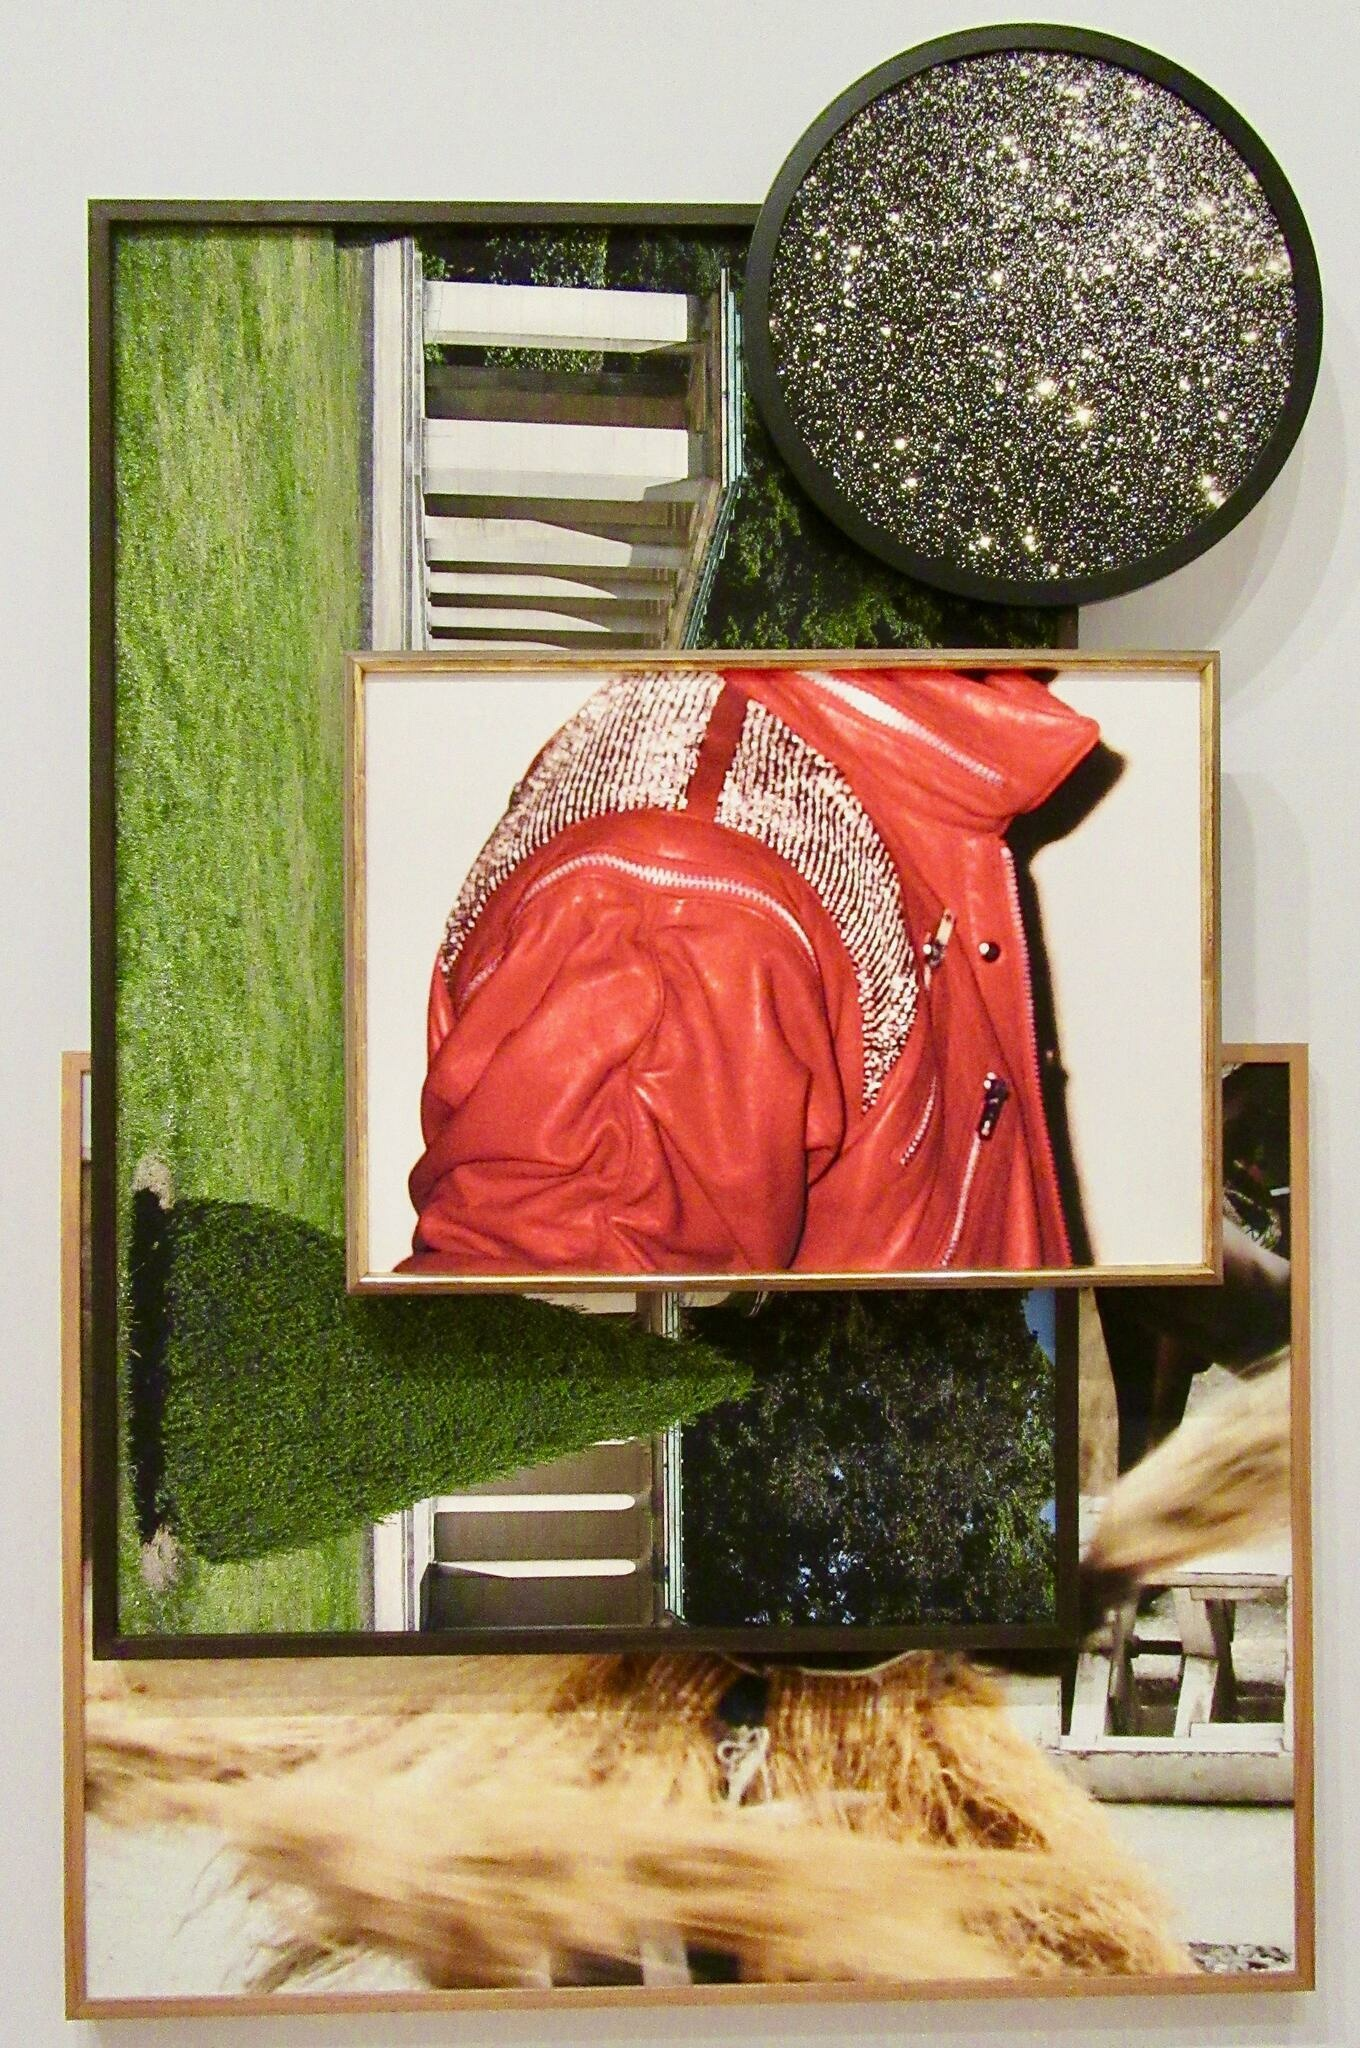 Layered framed photographs of a starry sky, a garden colonnade, an embellished red jacket, and a whirling grass skirt